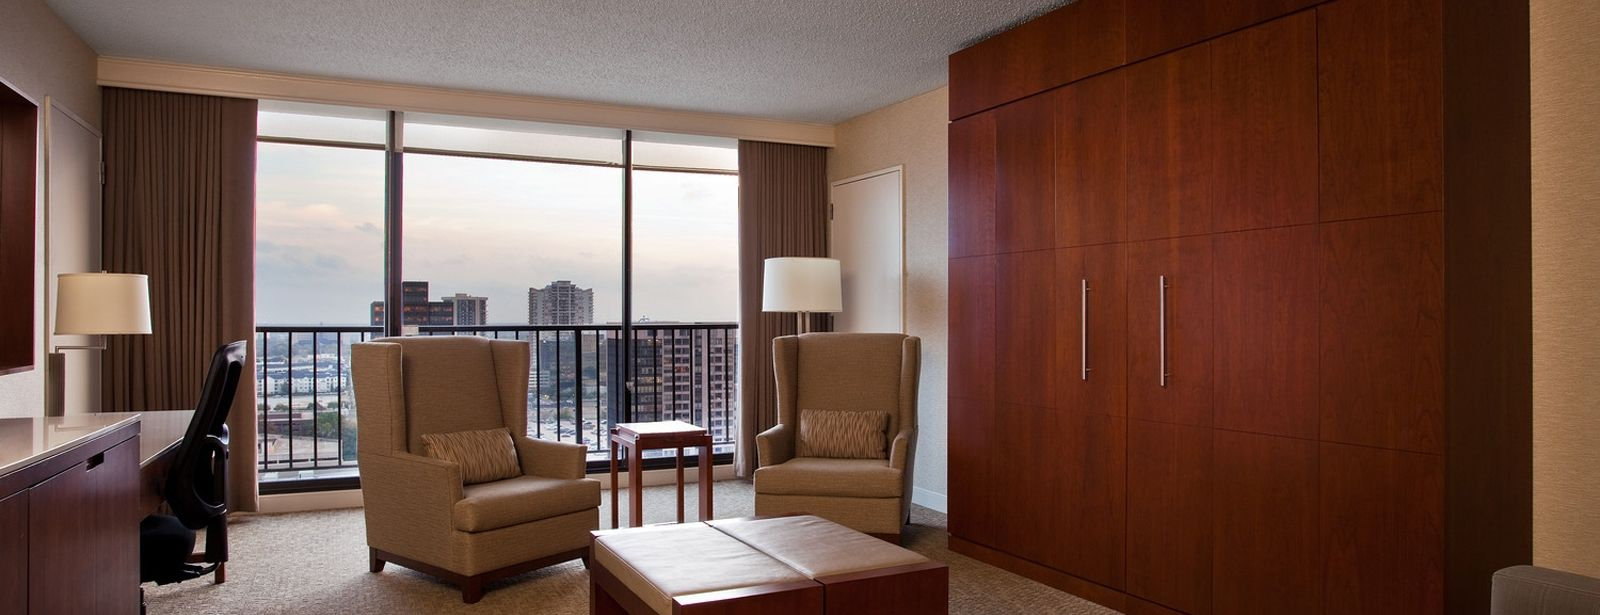 Parlor Suites - The Westin Galleria Houston